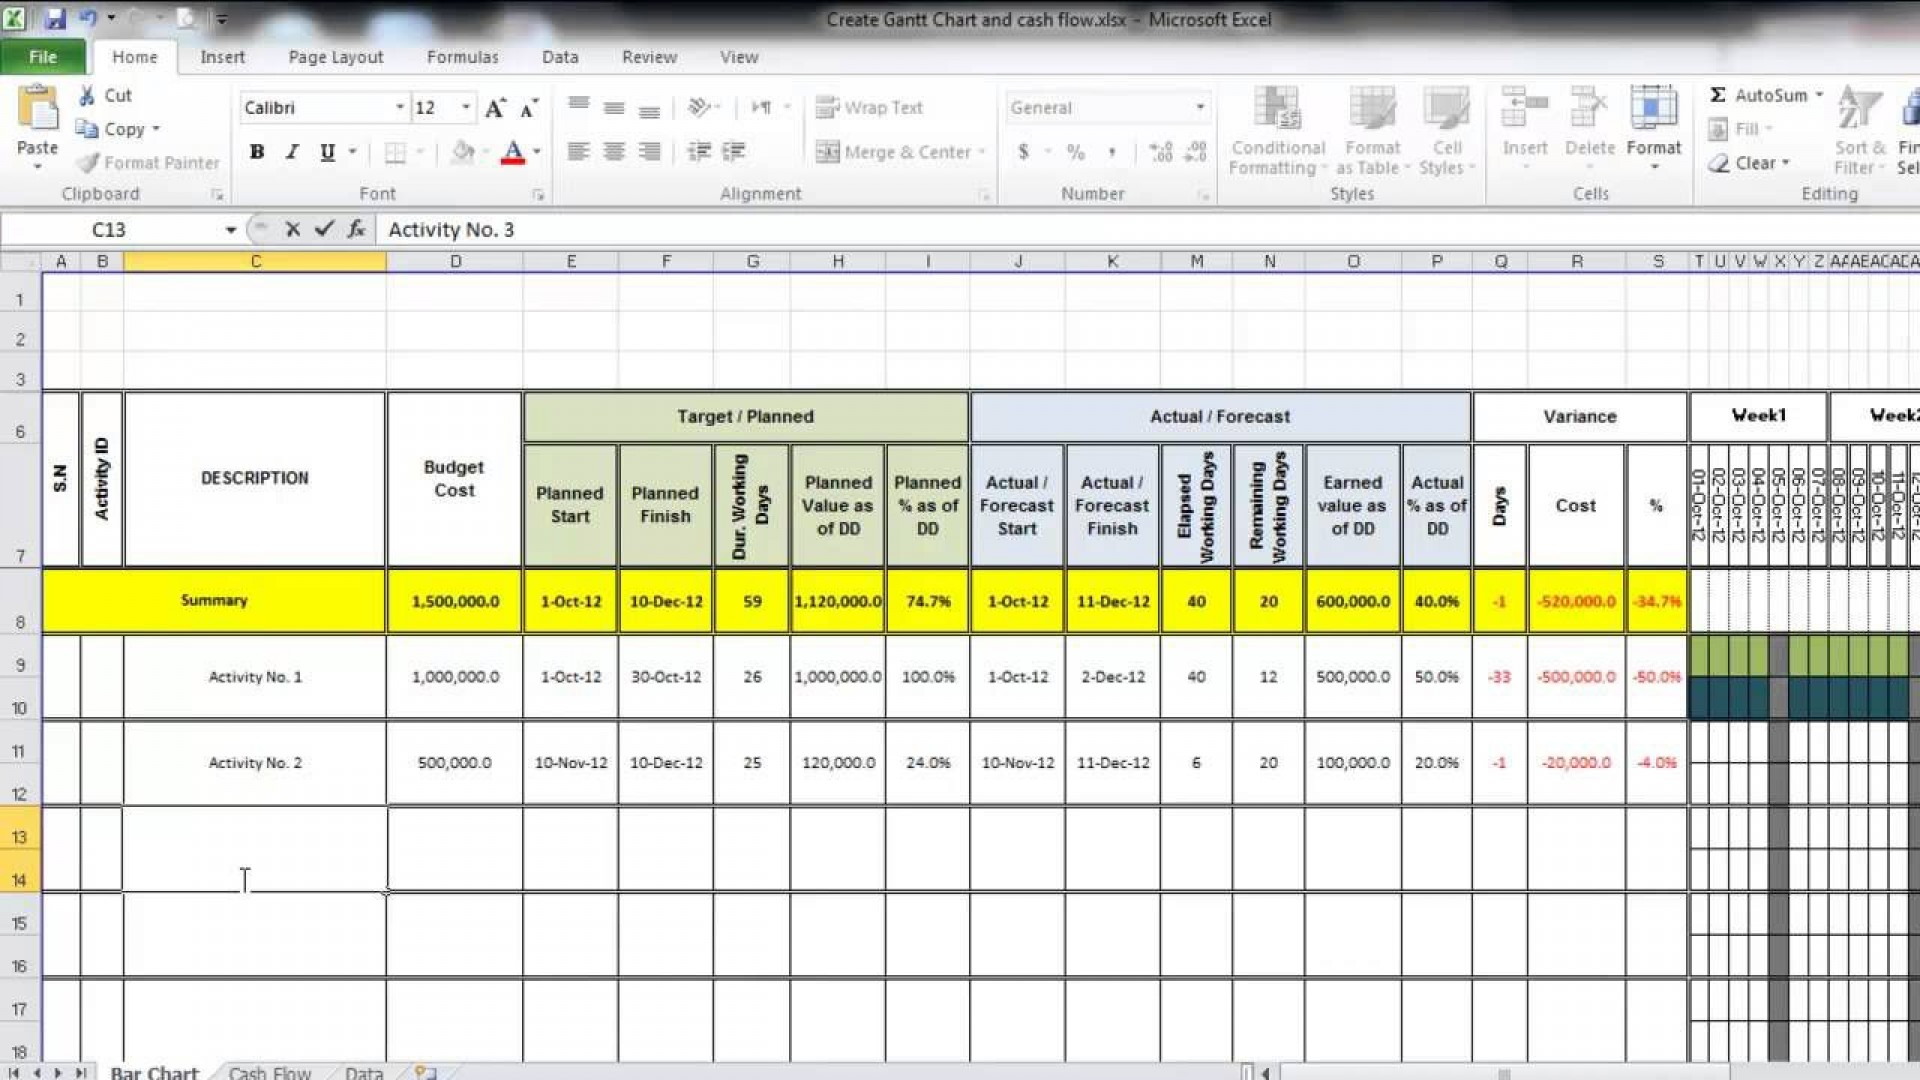 004 Fascinating Cash Flow Sample Excel Highest Quality  Spreadsheet Free Forecast Template1920